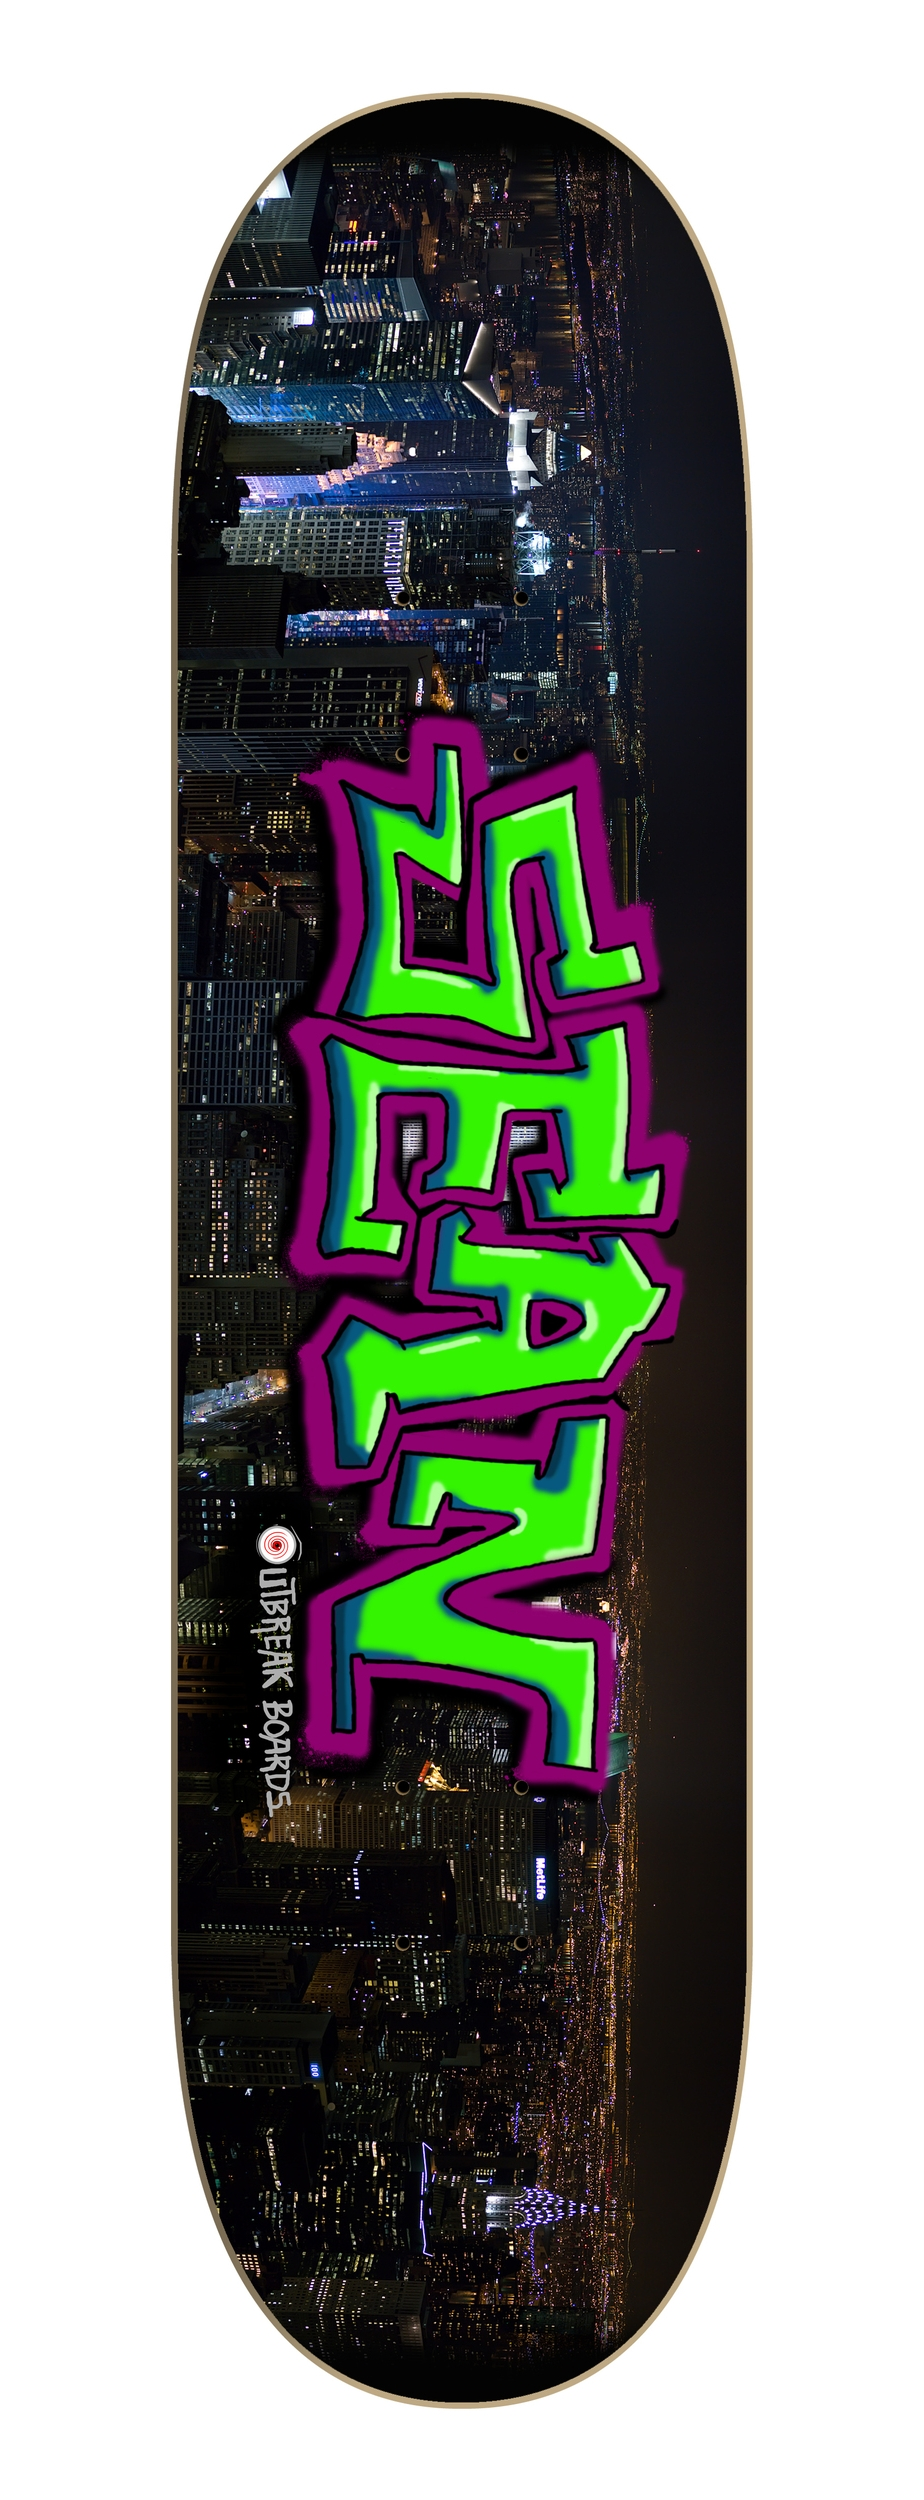 Cus Graffiti DECK.jpg